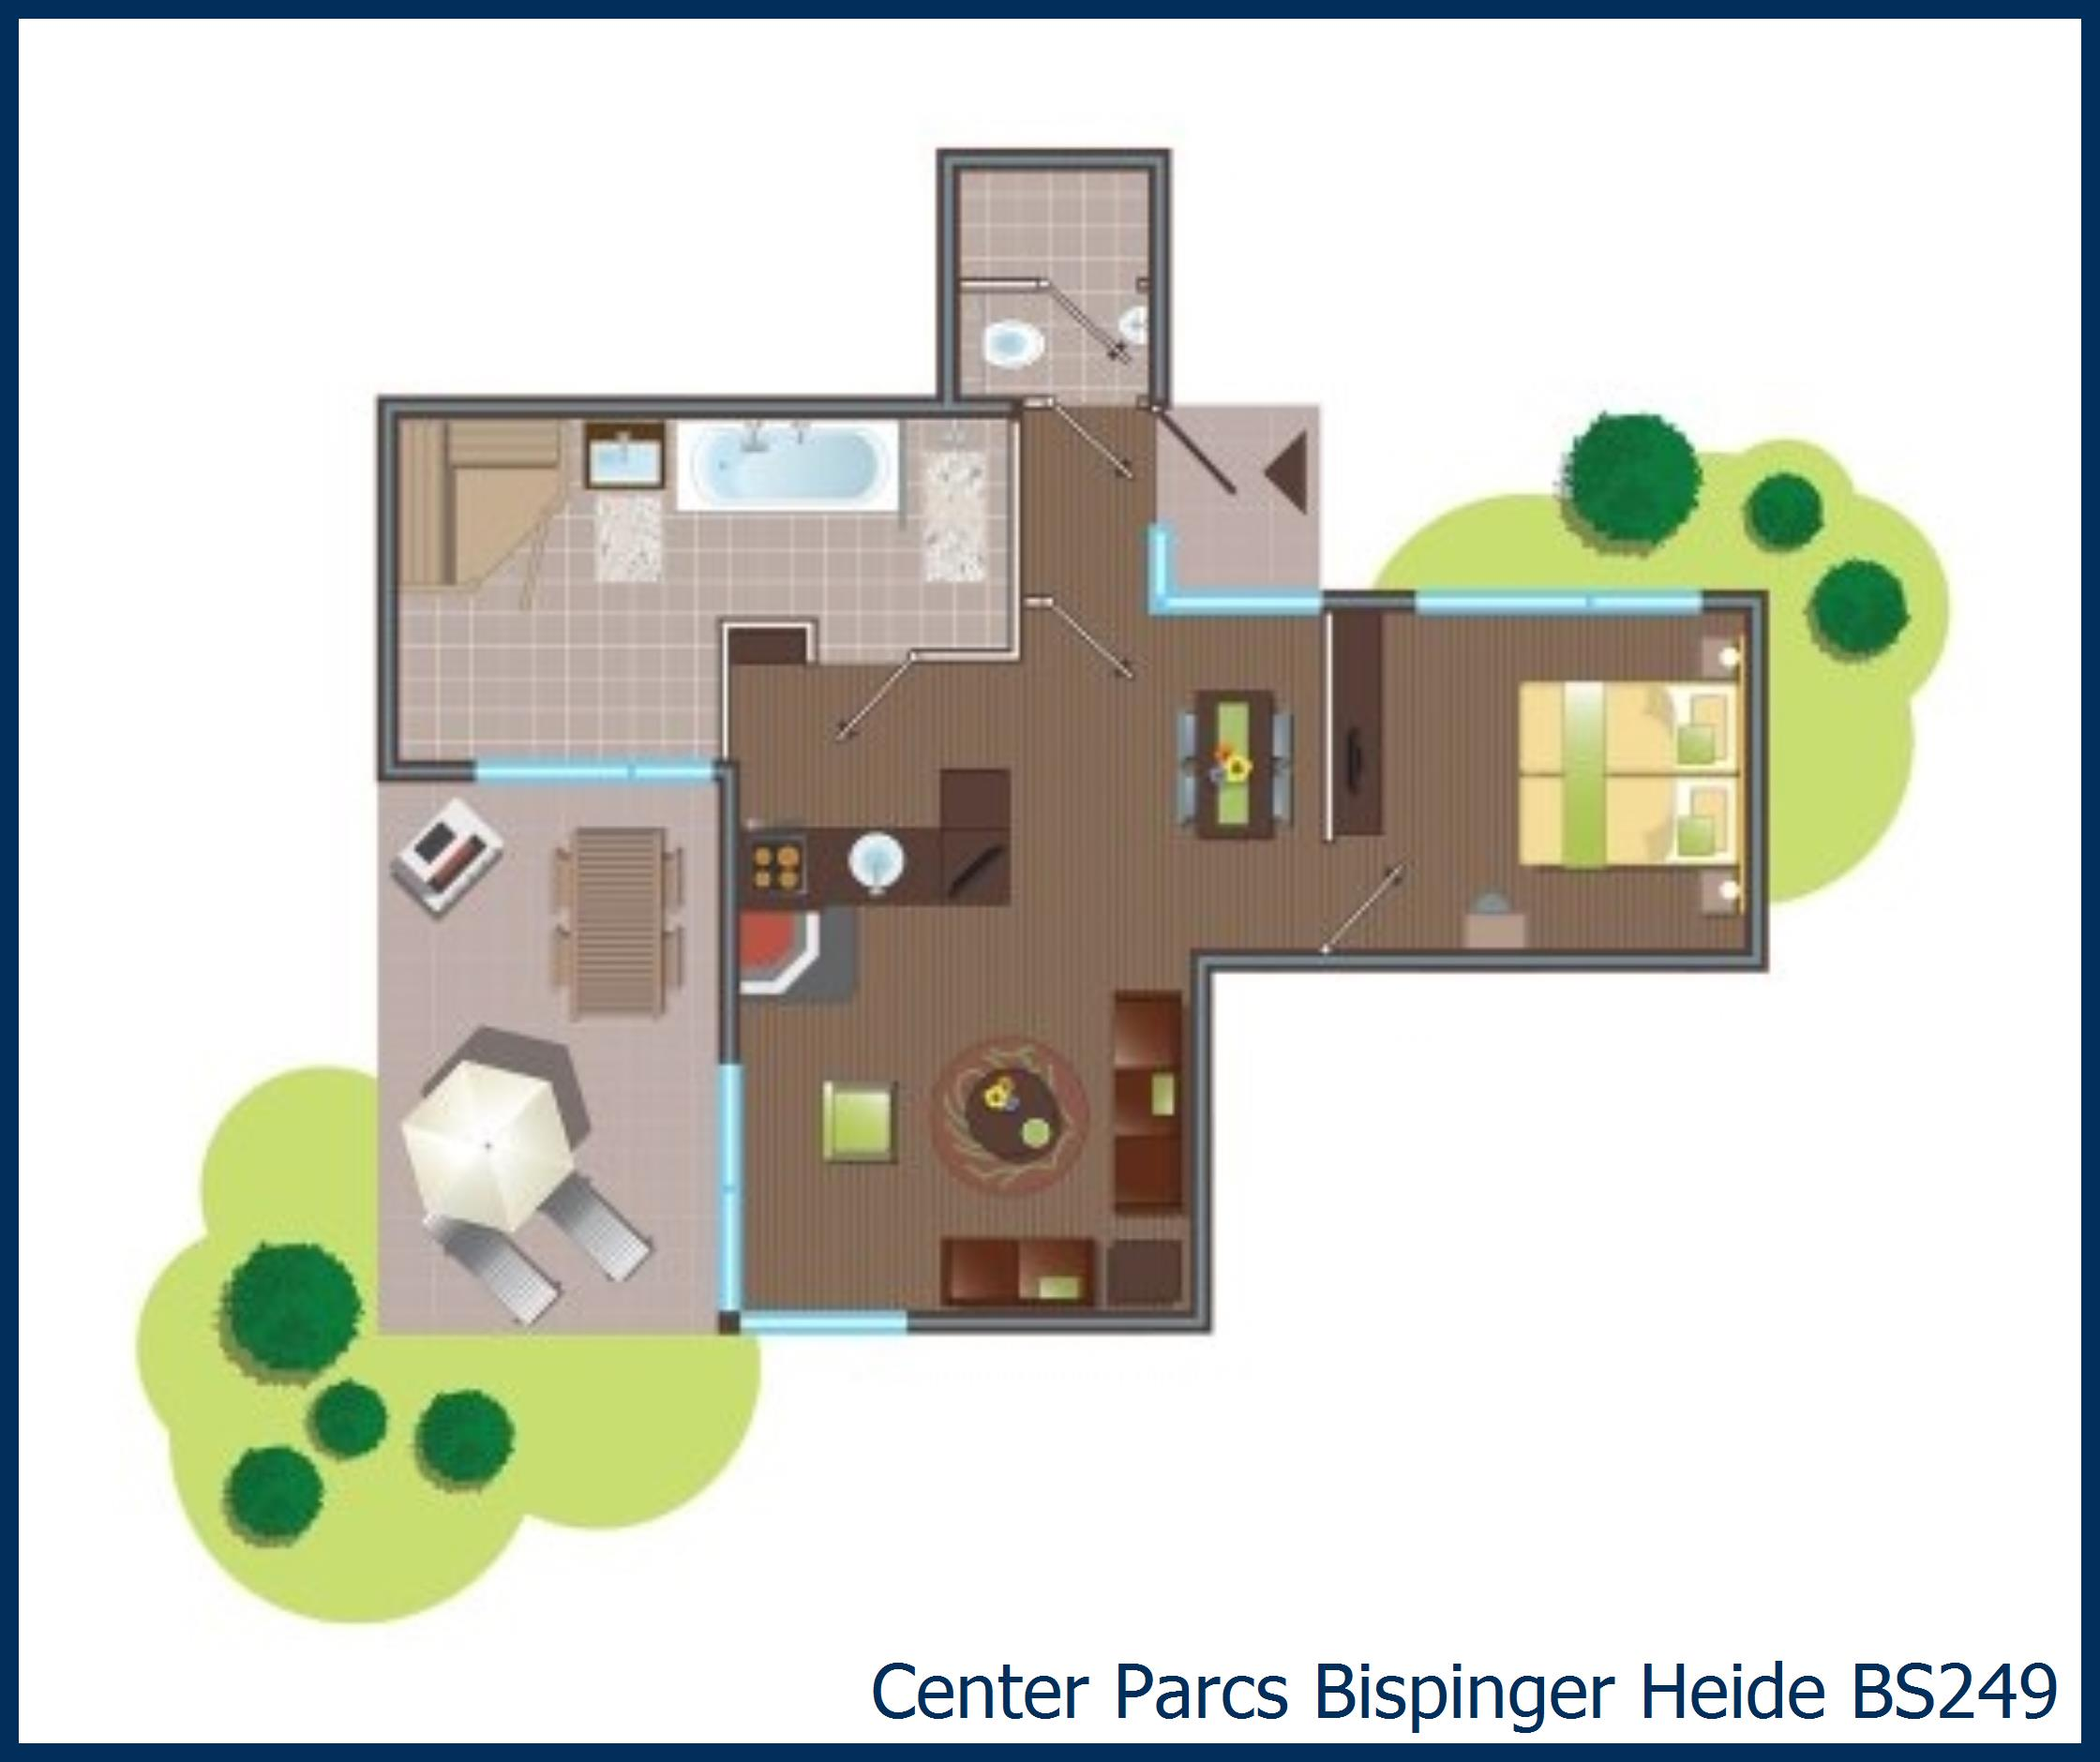 VIP cottage BS249 in Bispinger Heide